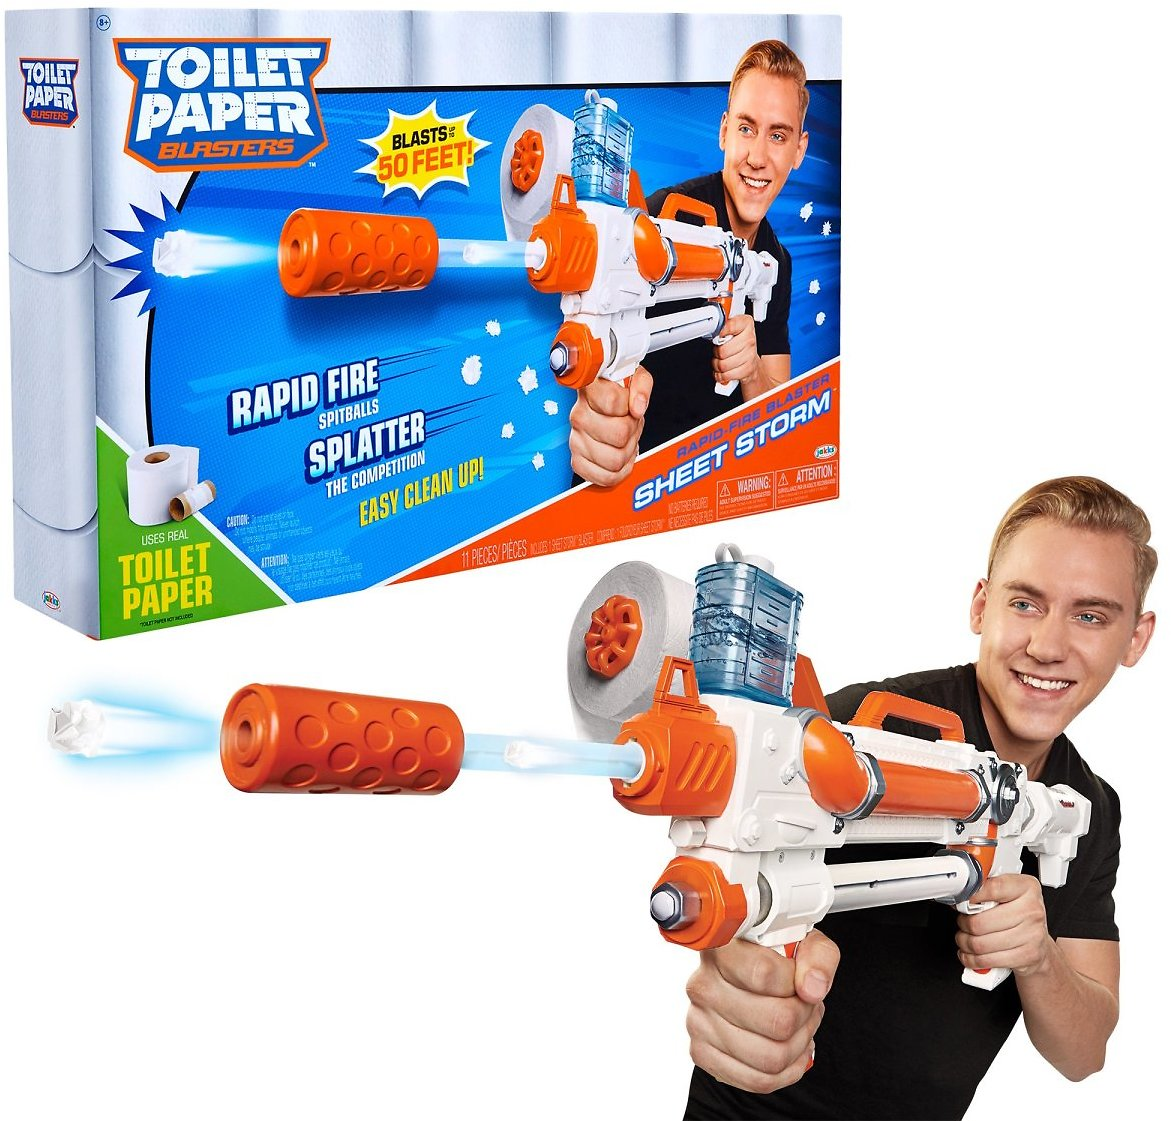 TP BLASTER Toilet Paper Blasters Sheet Storm, Toy Blaster